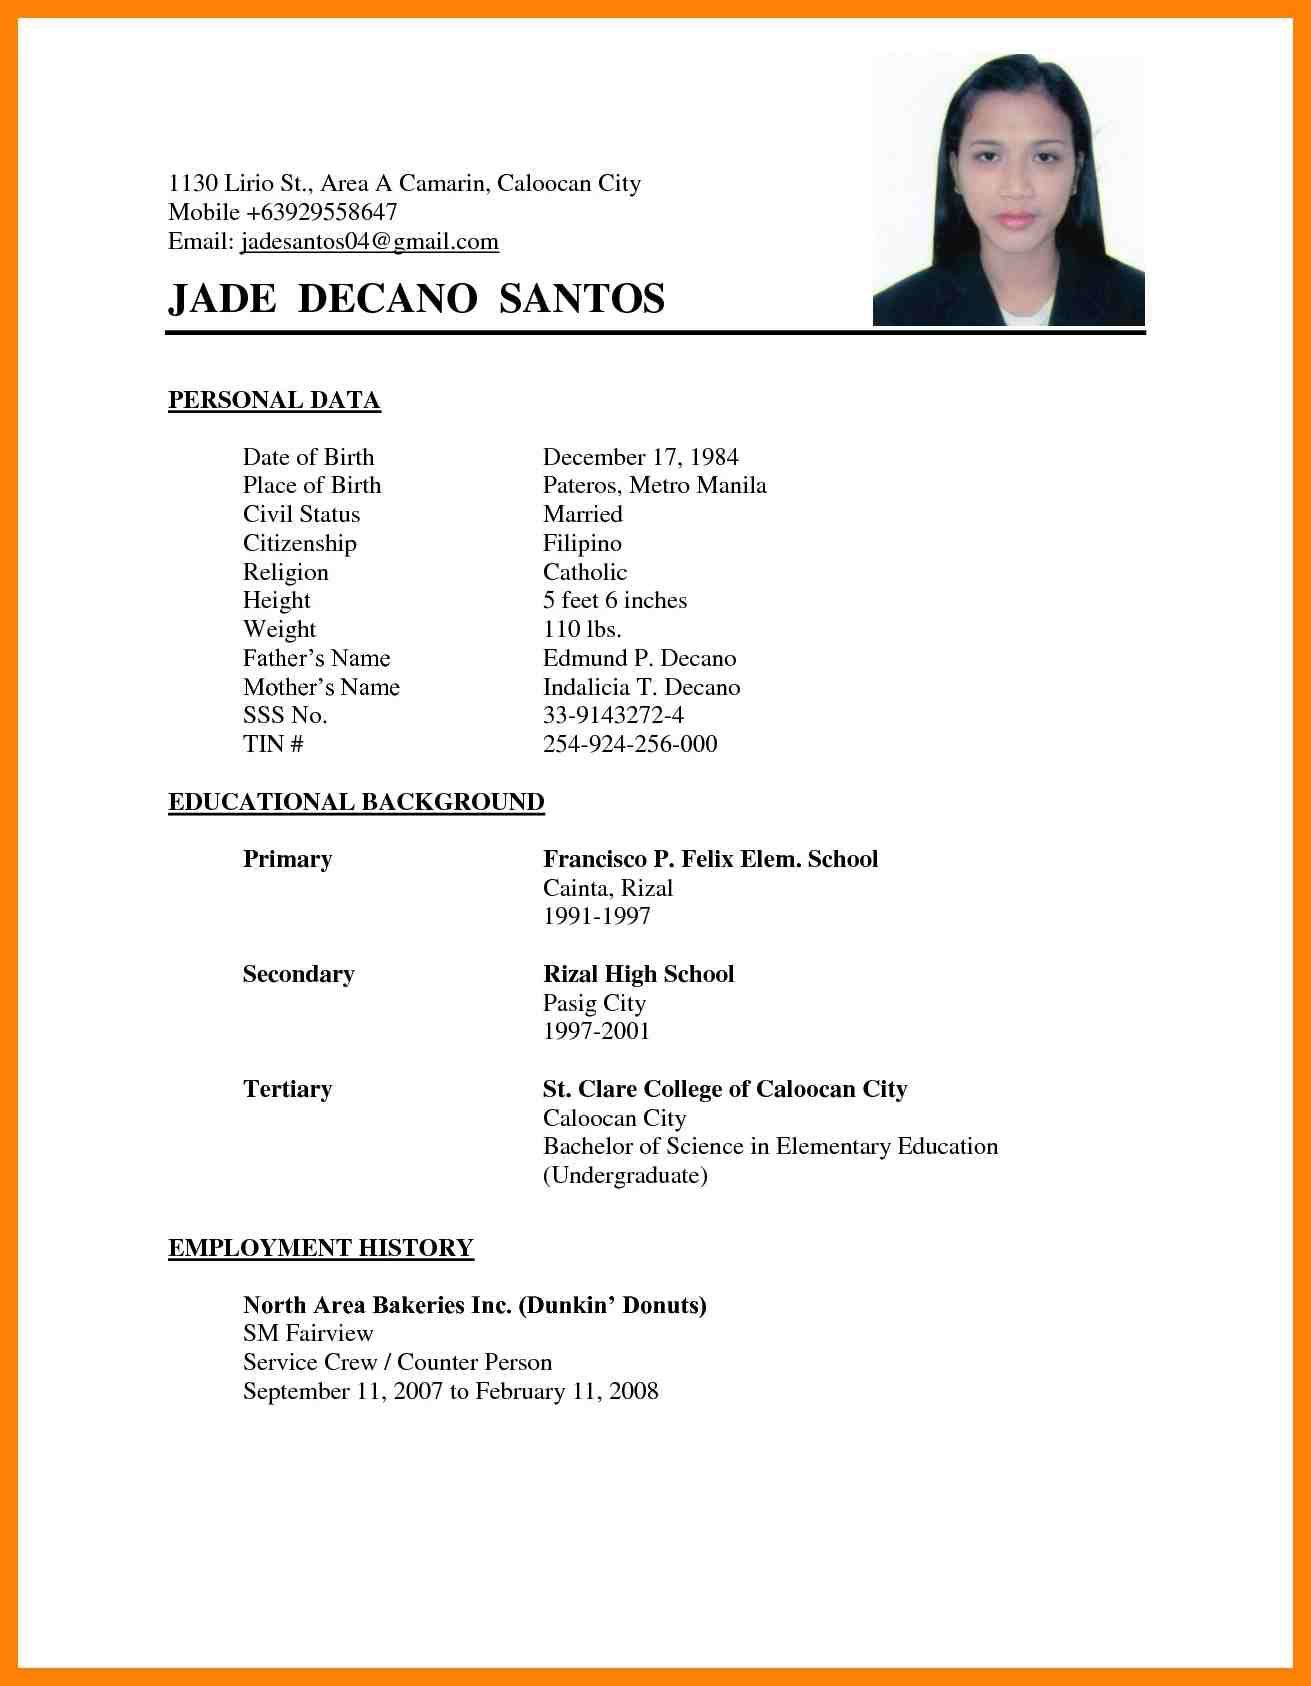 7 biodata for marriage format cook resume think down town kc